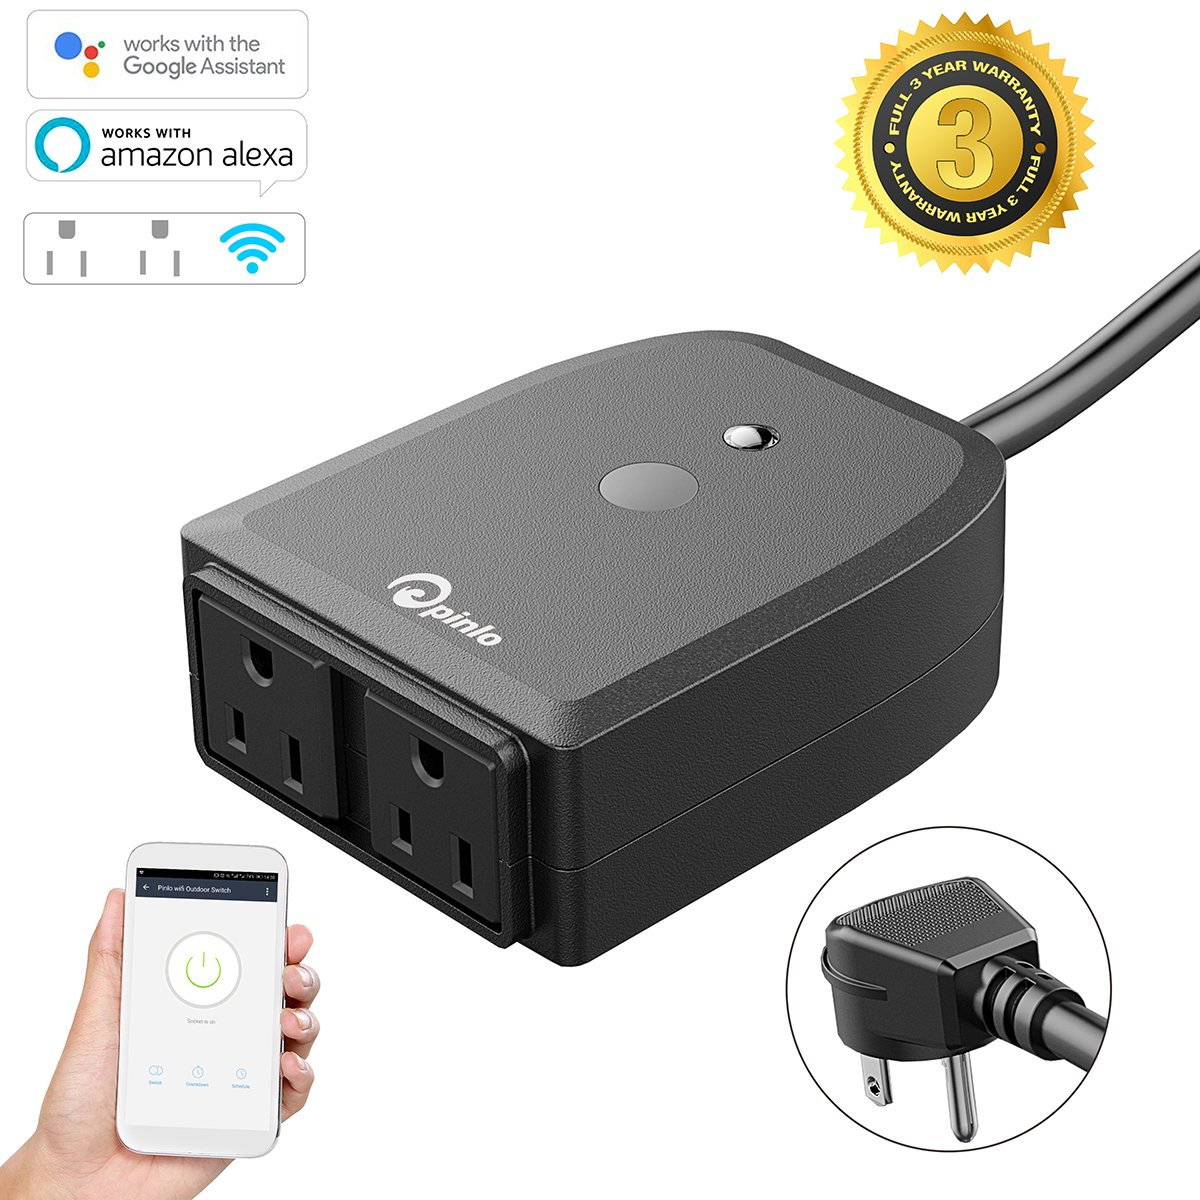 Outdoor wifi outlet,Outdoor smart plug with 2 Independent Controlled Sockets Wireless Remote Control/Timer,Compatible with Alexa/Google Home Assistant,Waterproof for Indoor Outdoor Use,No Hub Required